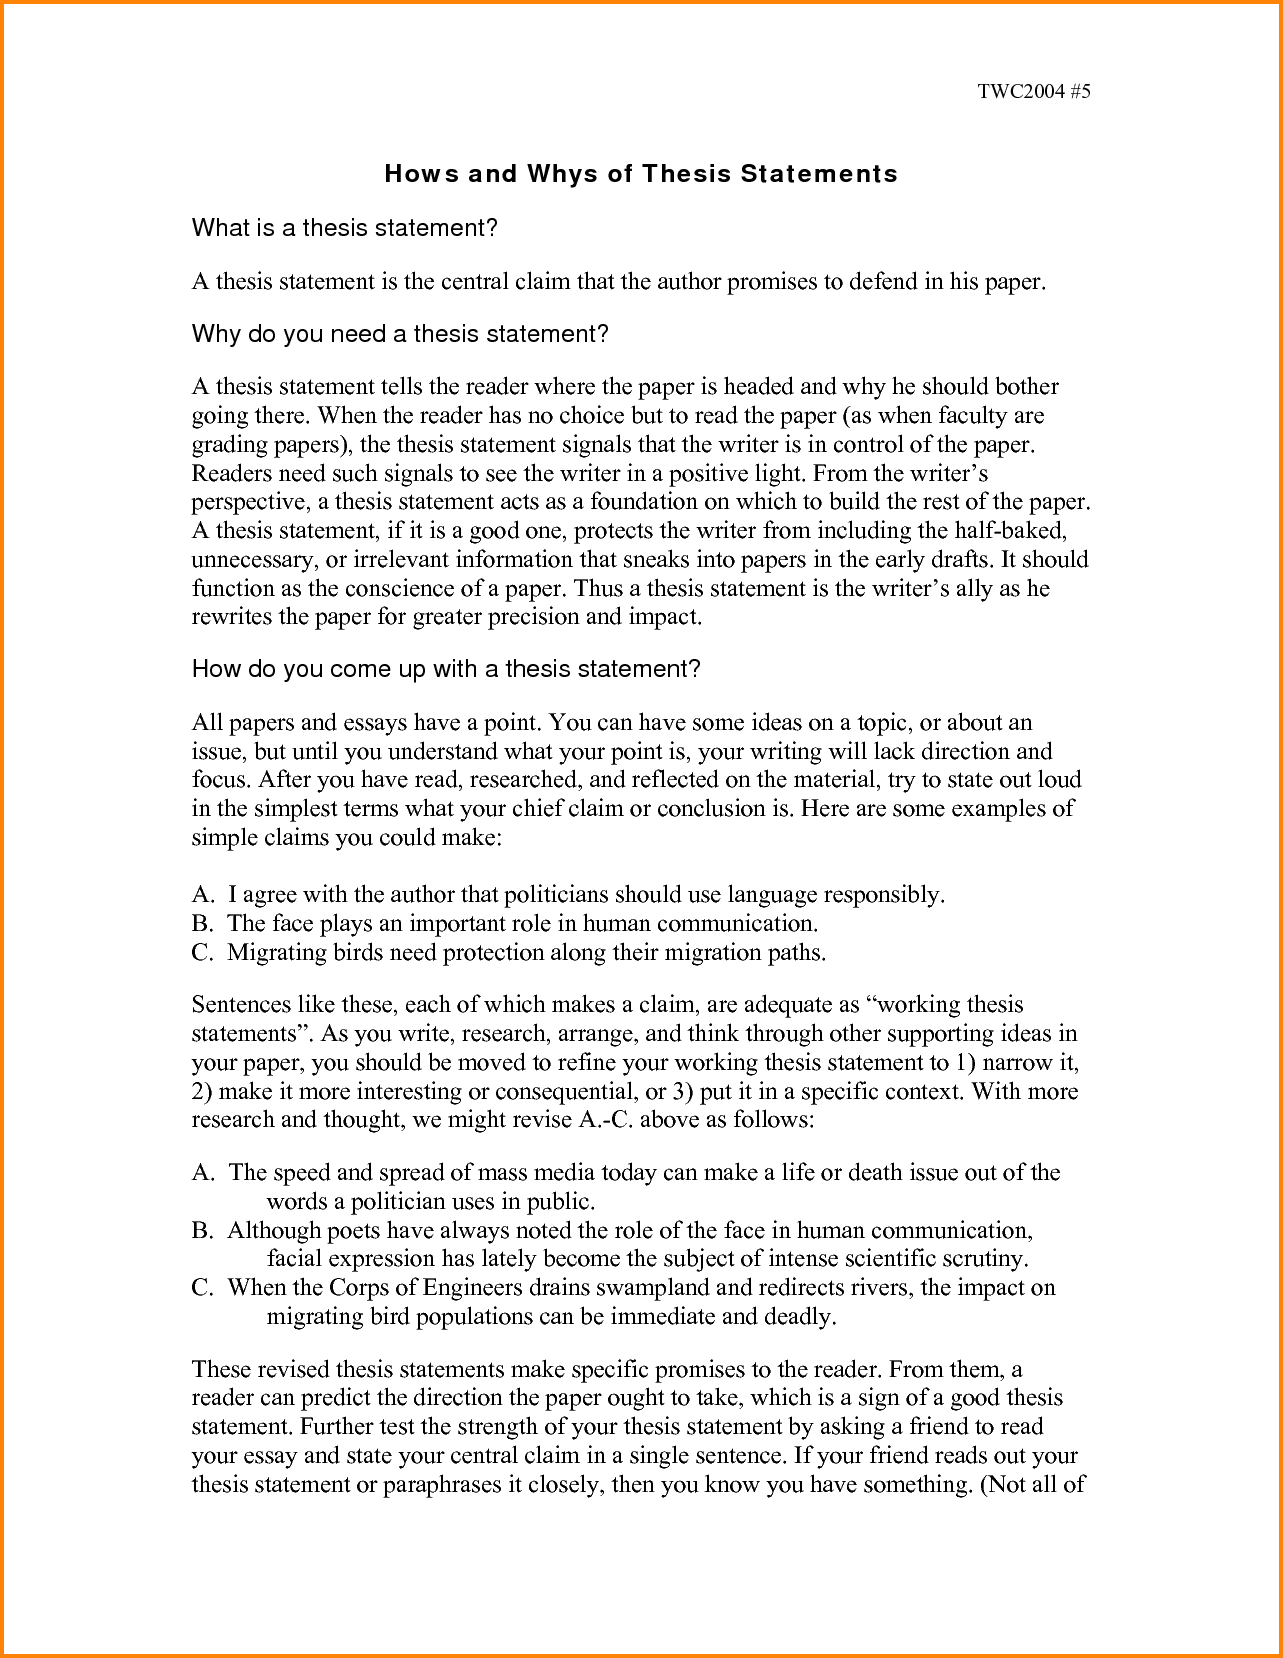 003 Argumentative Research Paper Thesis Statement Examples For Essays Stunning Full